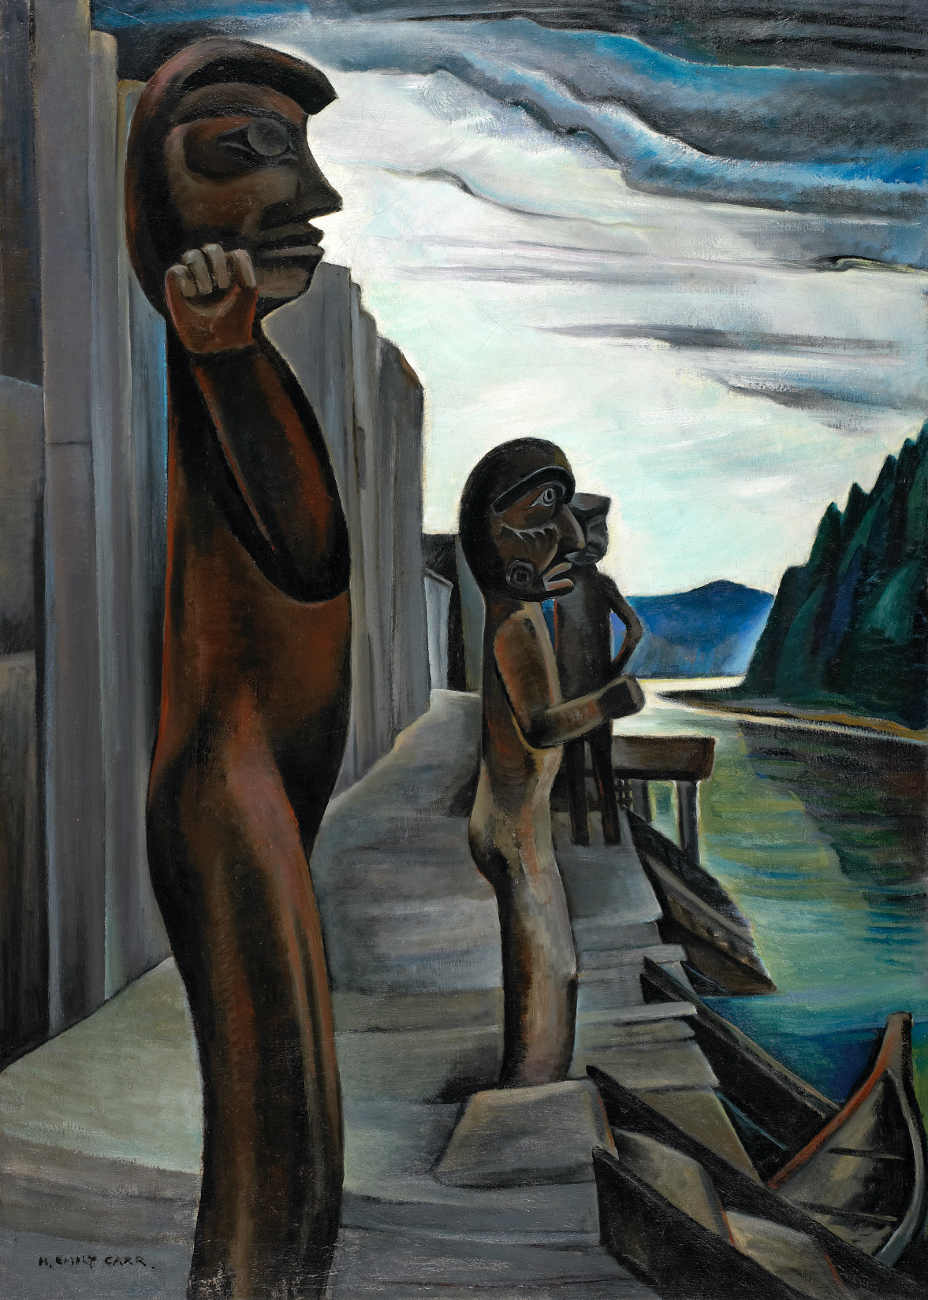 Emily Carr, Blunden Harbour, c 1930, oil on canvas, 129.8 x 93.6 cm, National Gallery of Canada, Ottawa, Photo © NGC